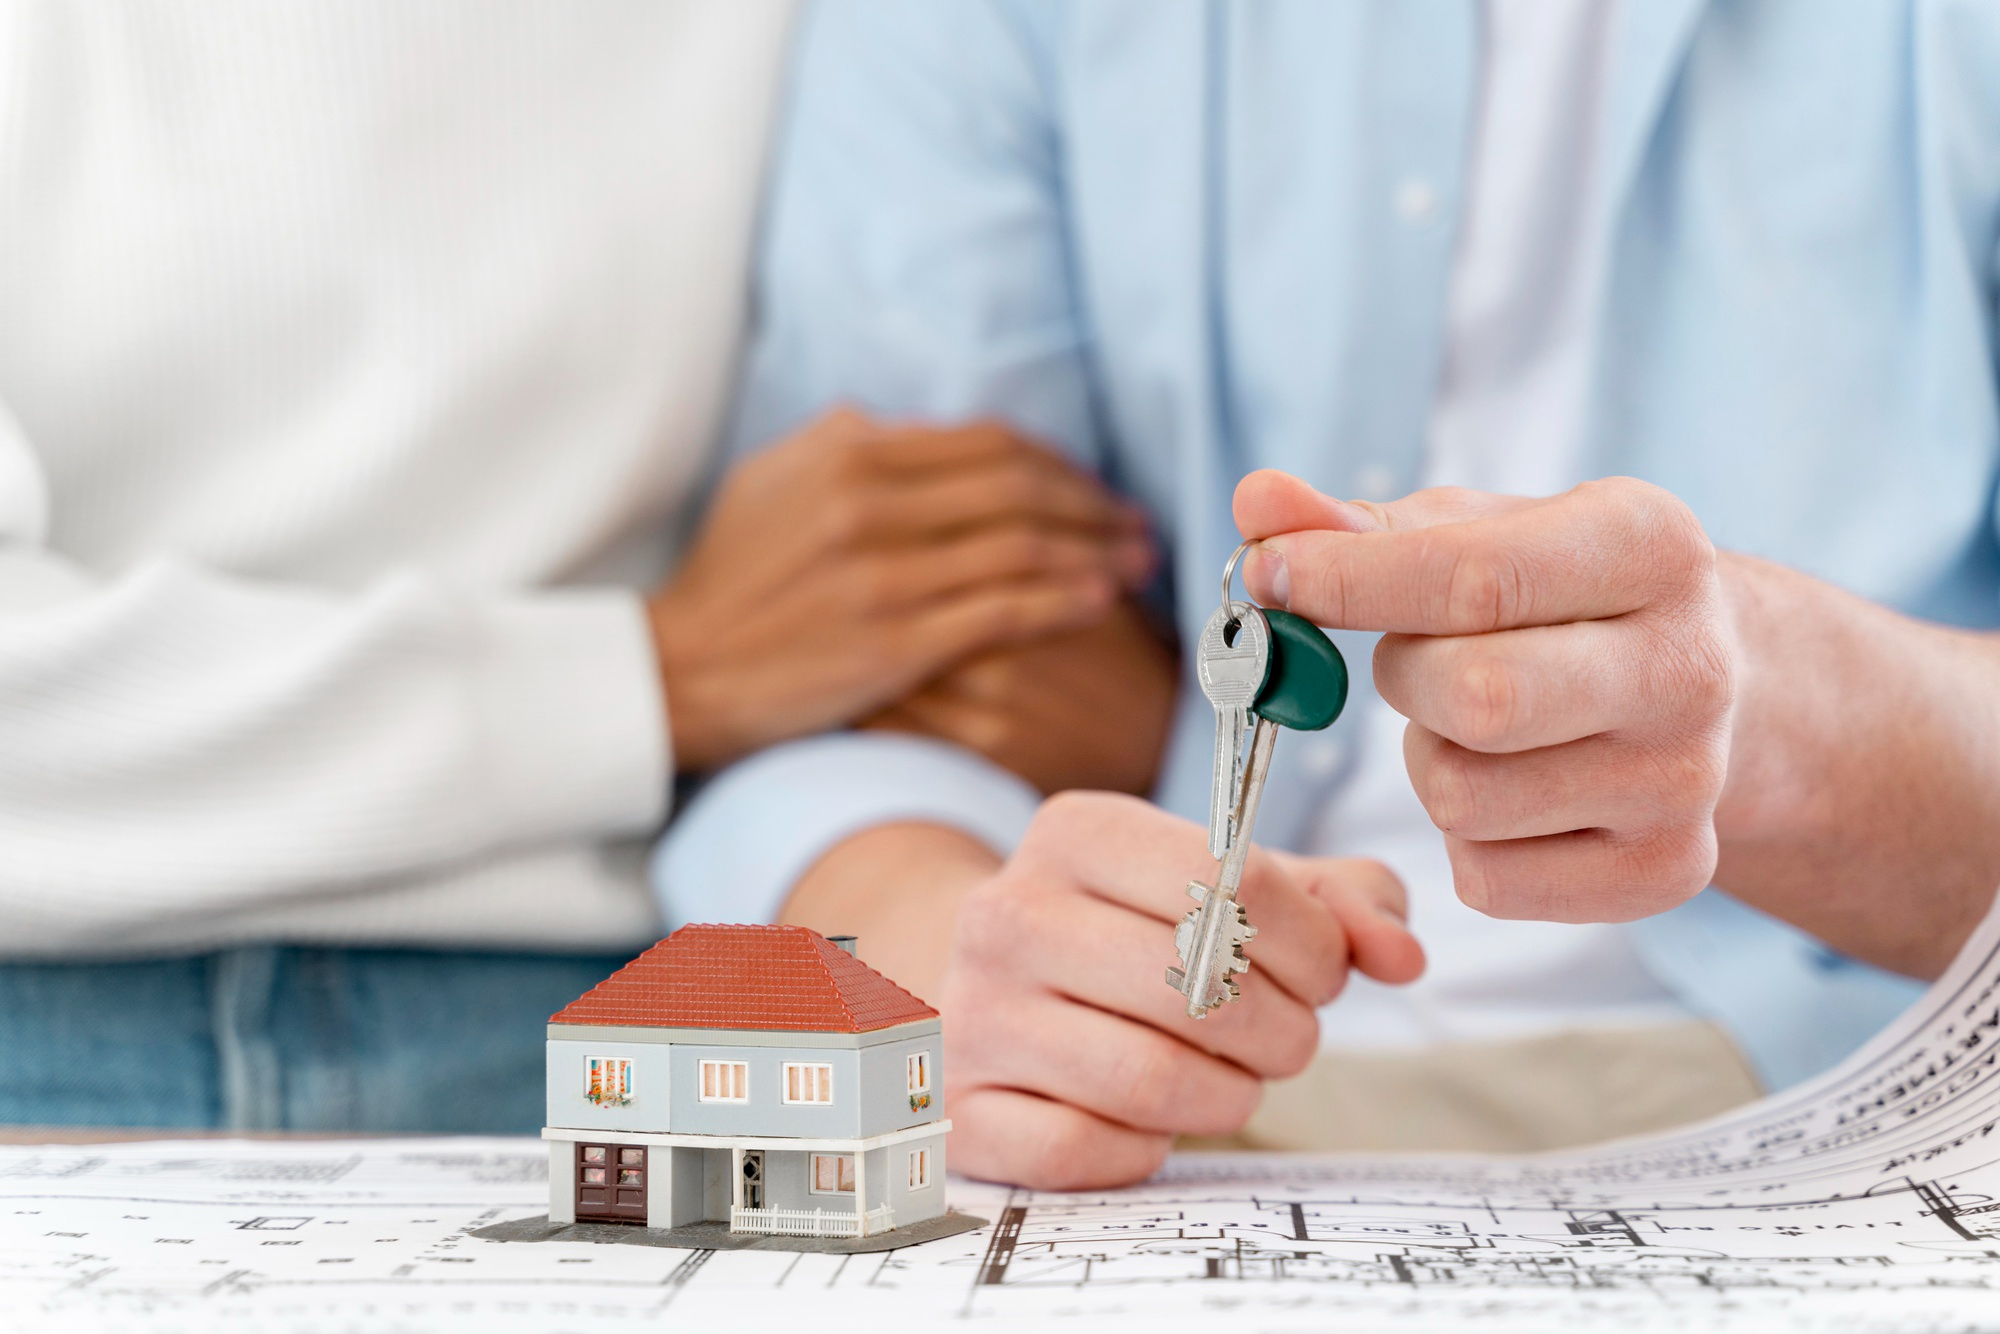 couple holding keys to new home with scale model and blueprints in front